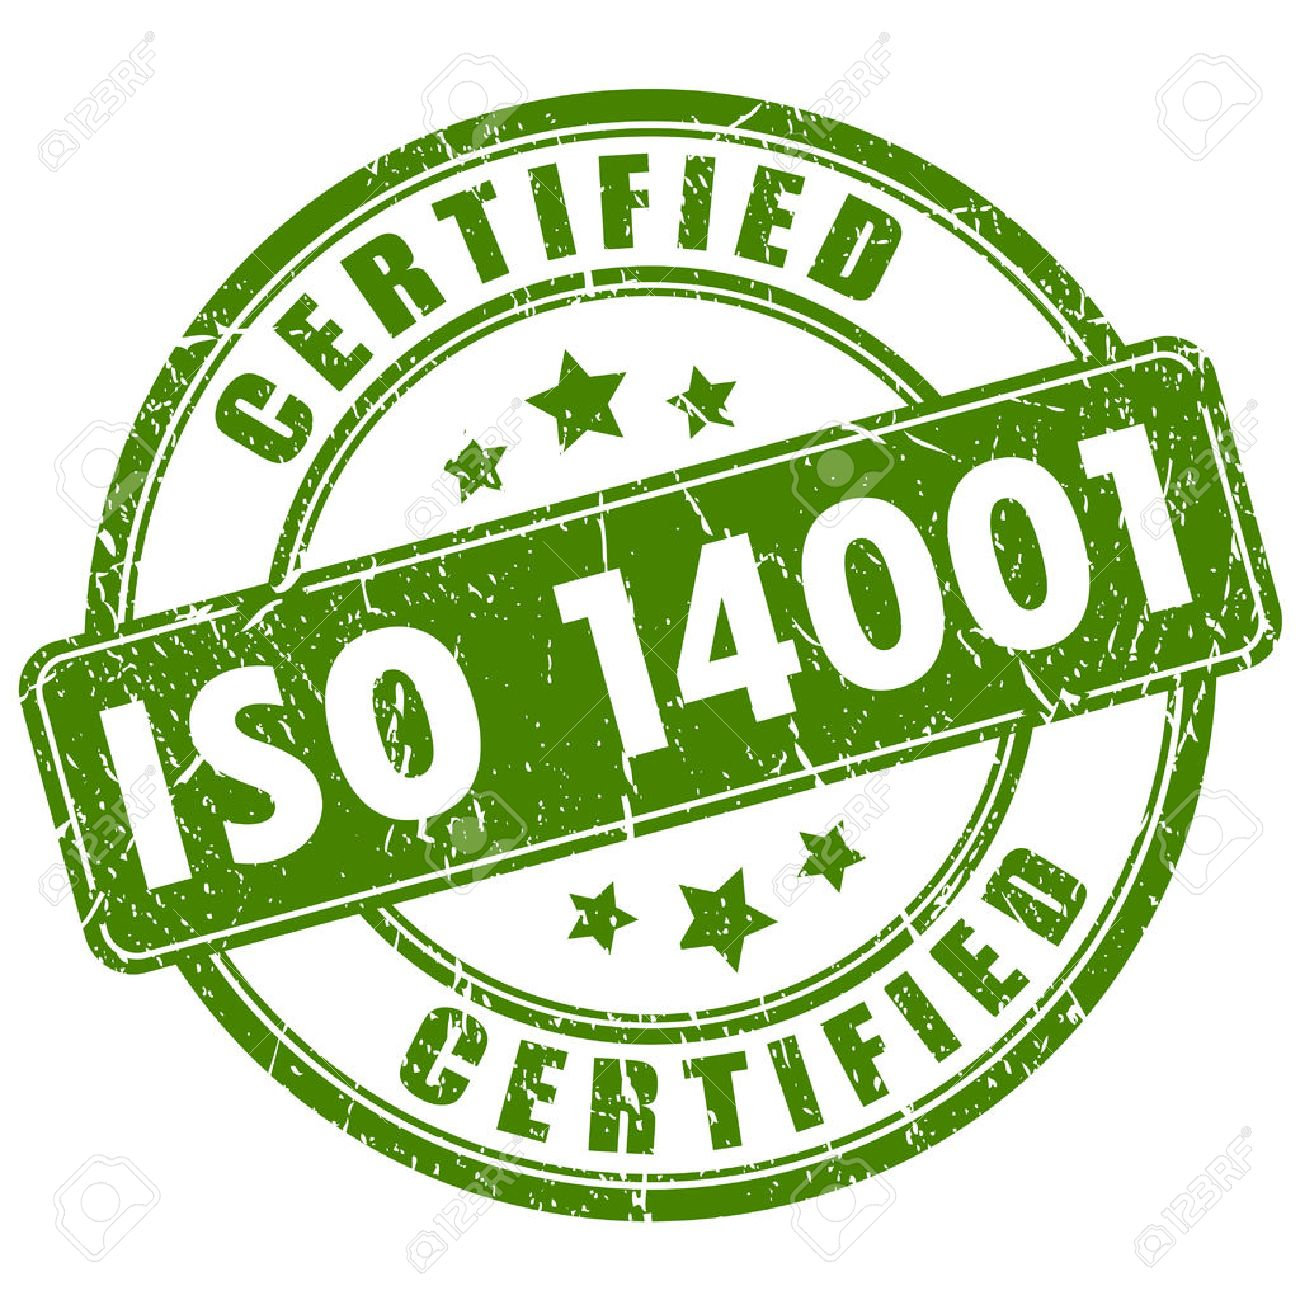 Iso 14001 certified stamp - 47589076